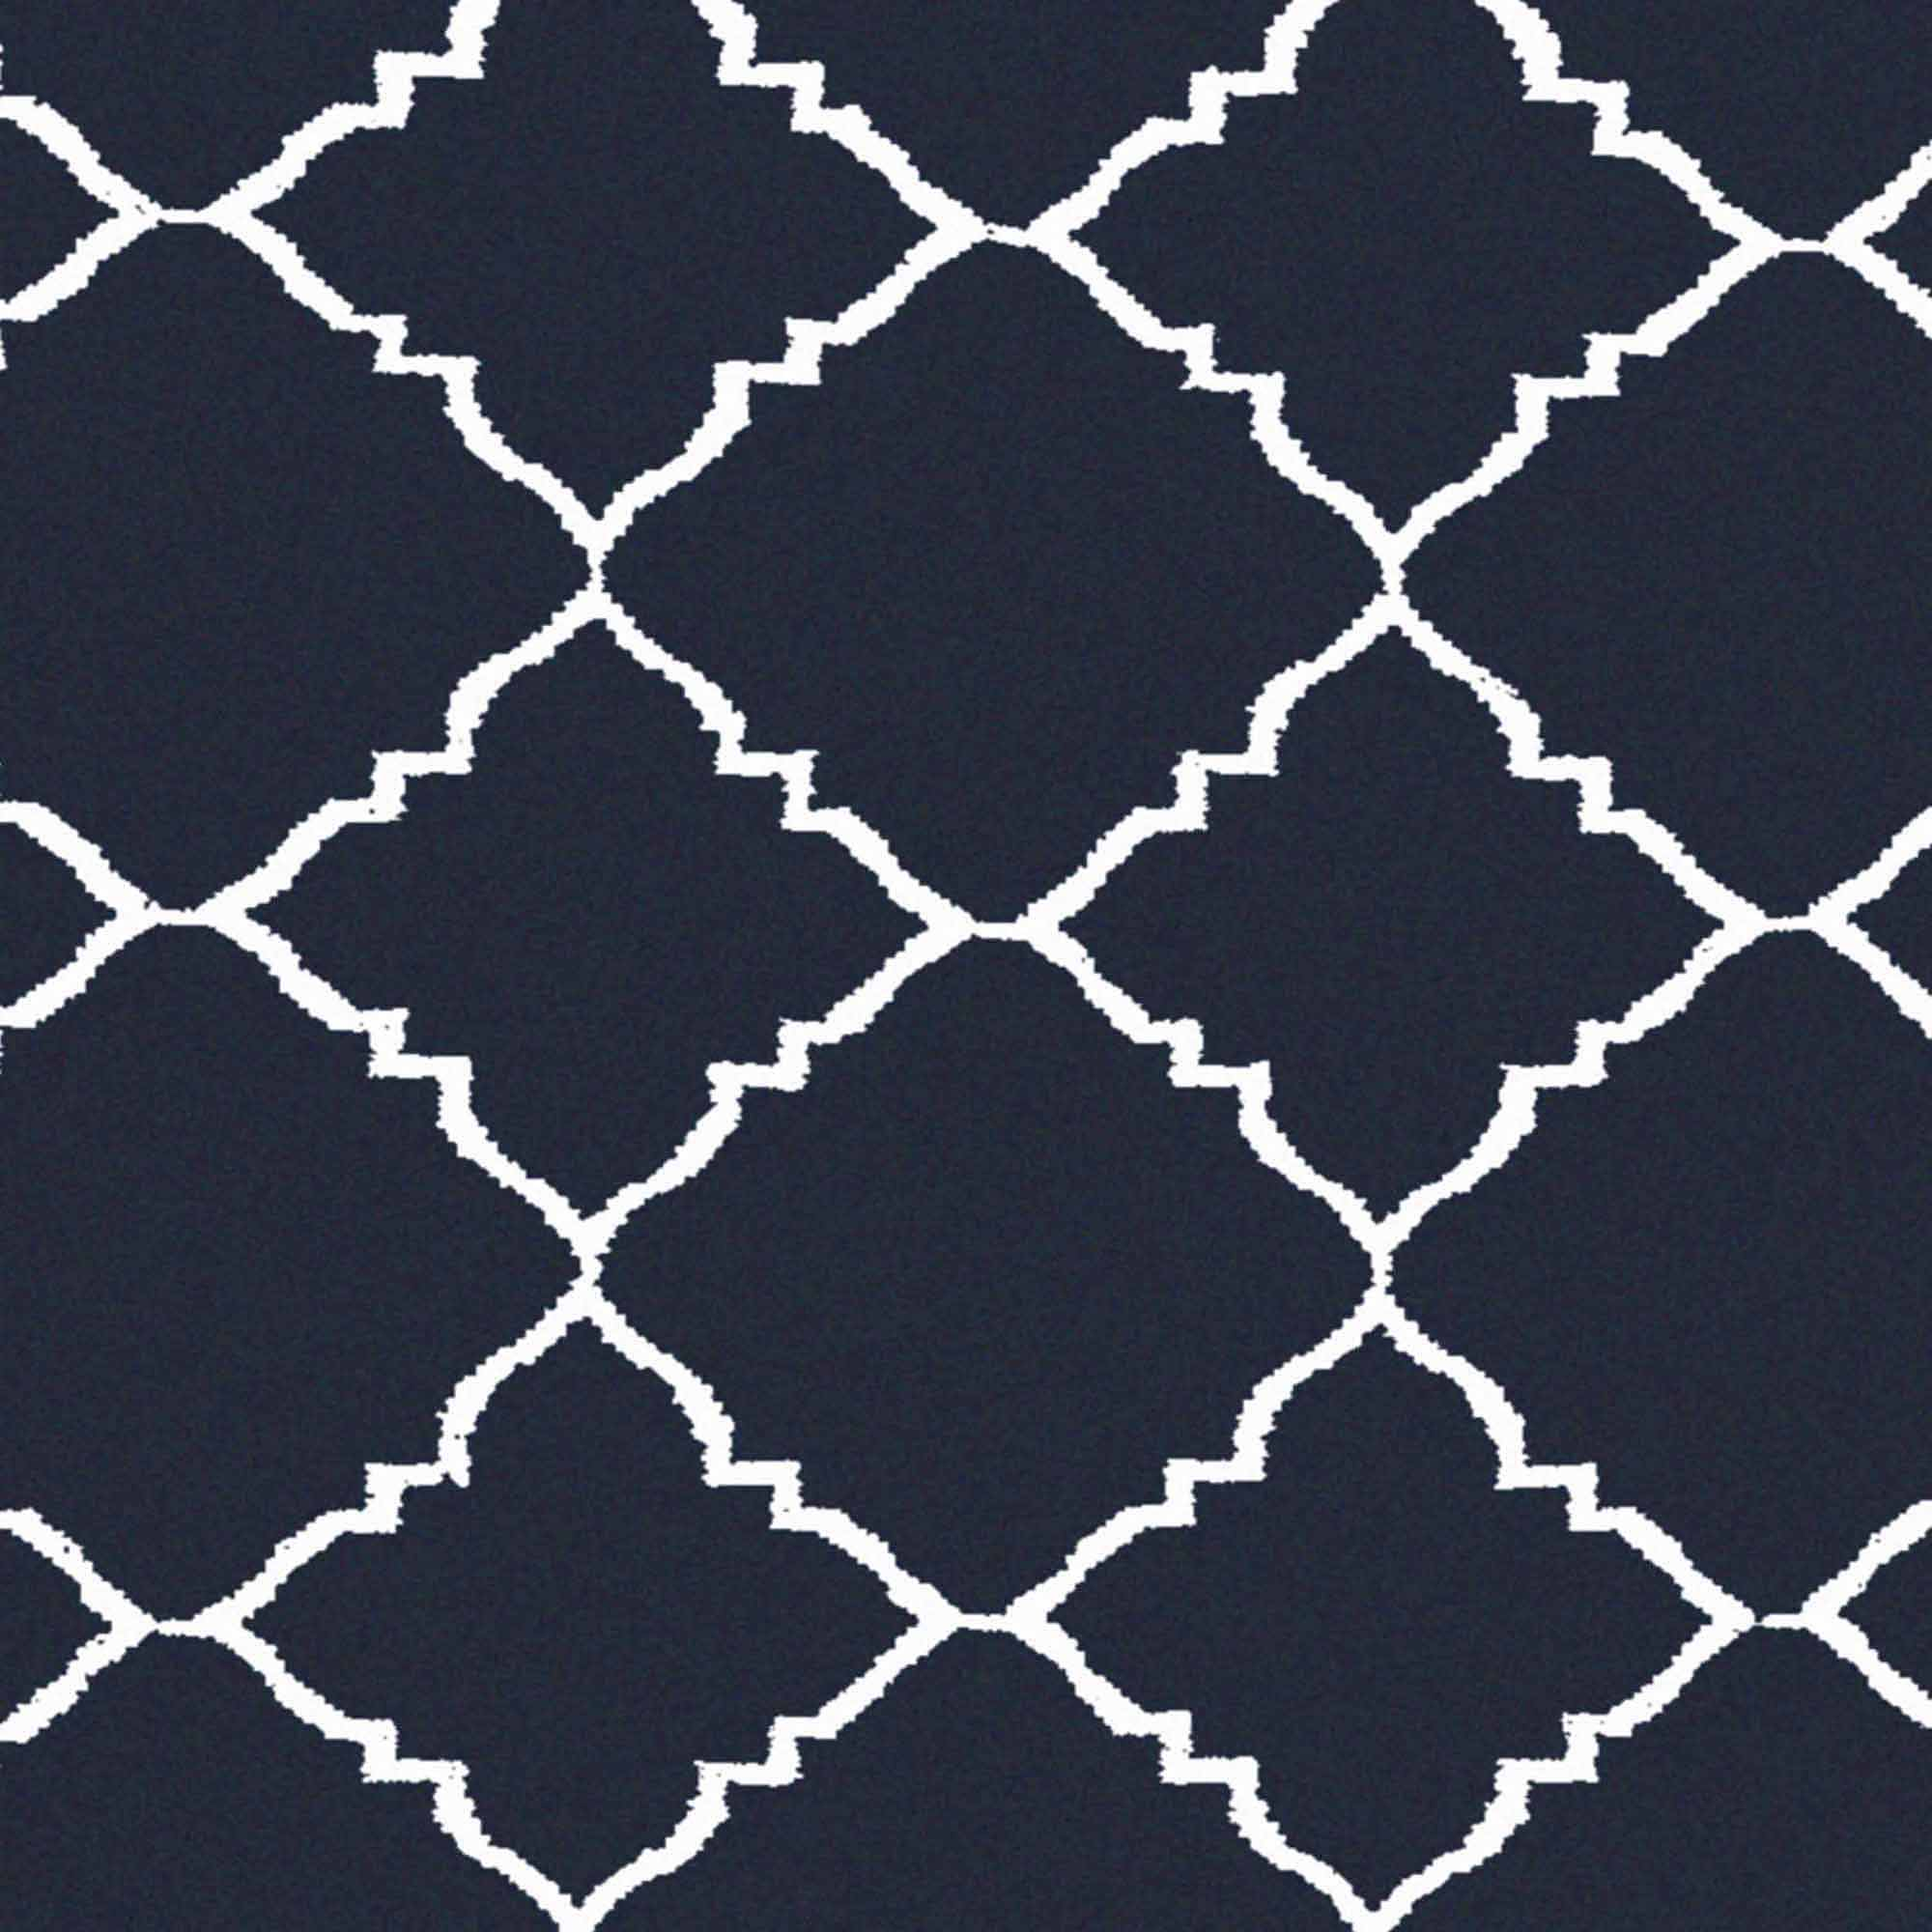 Art of Knot Prichard Hand Woven Gate Scroll Flatweave Wool Area Rug, Navy